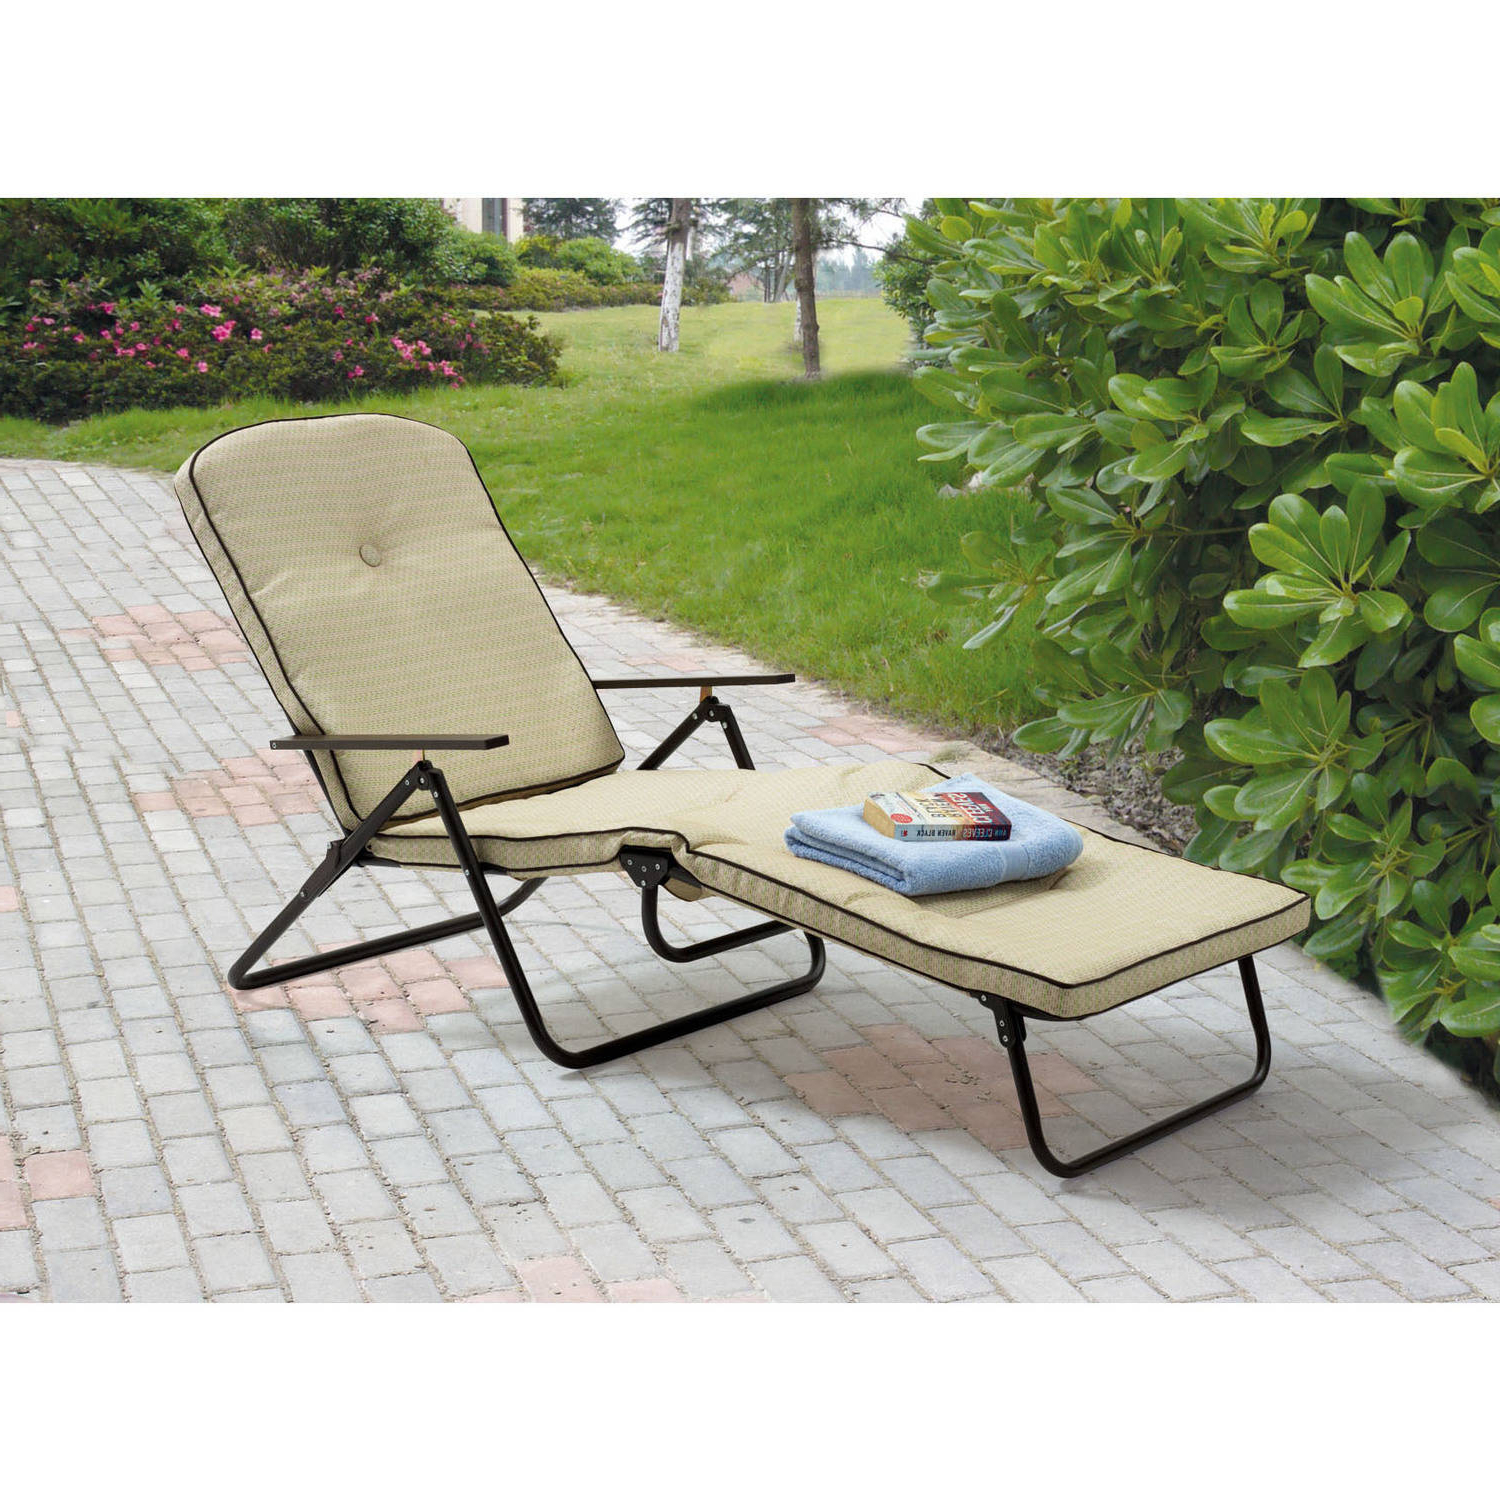 Outdoor Yard Pool Recliner Folding Lounge Table Chairs Regarding Fashionable Mainstays Sand Dune Outdoor Padded Folding Chaise Lounge, Tan (View 3 of 25)